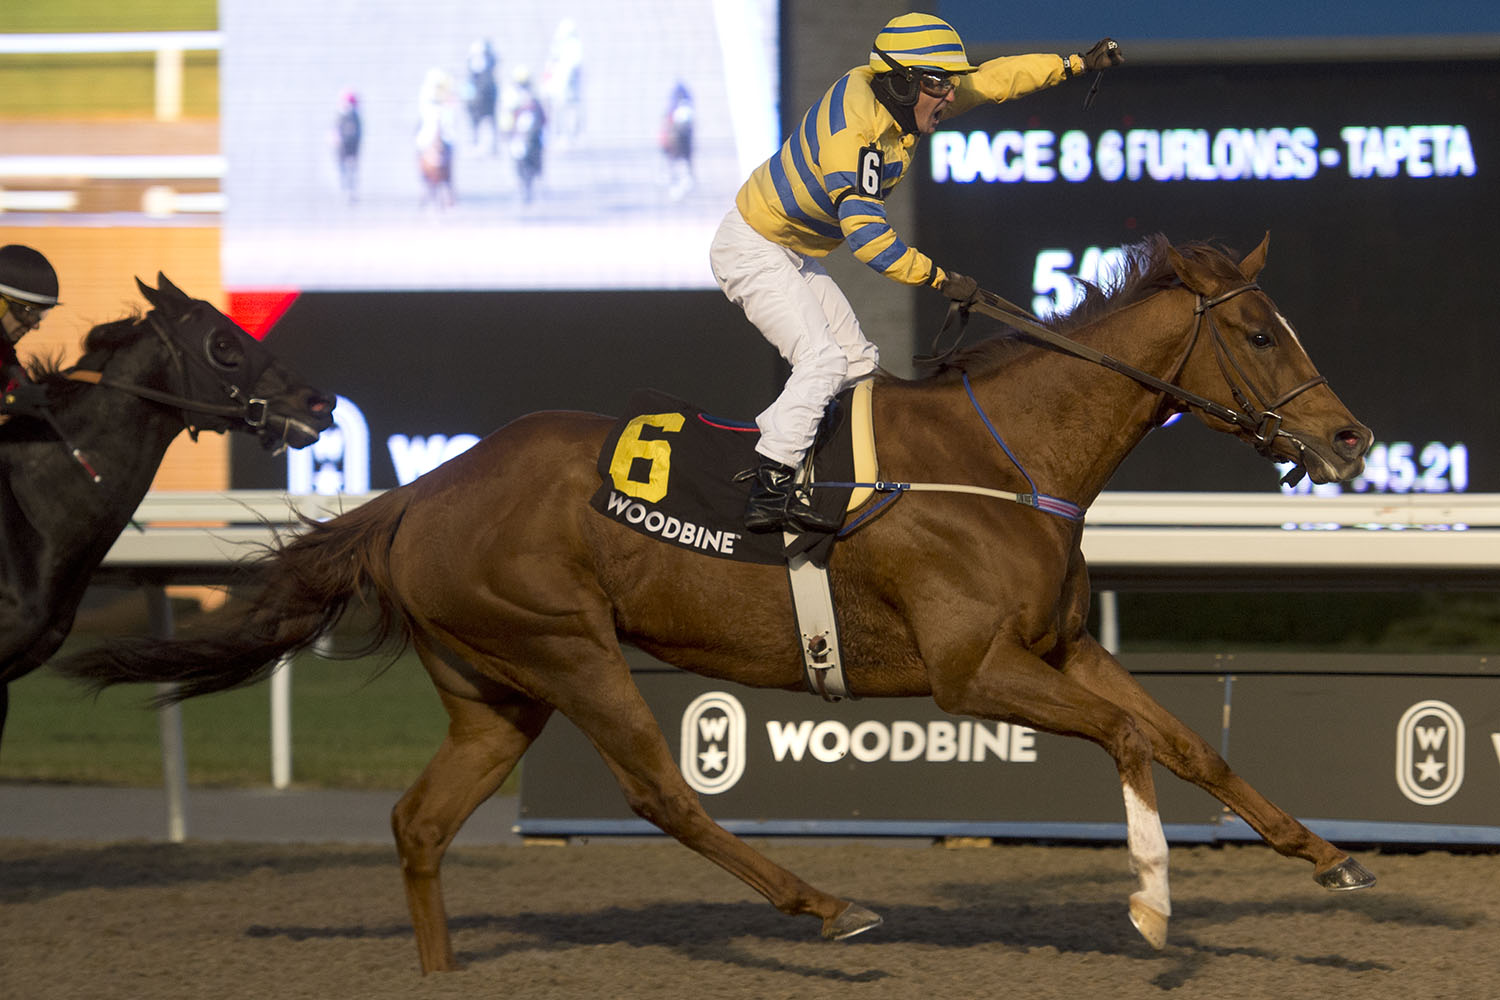 Woodbine CEO desperately worried about the future of the industry